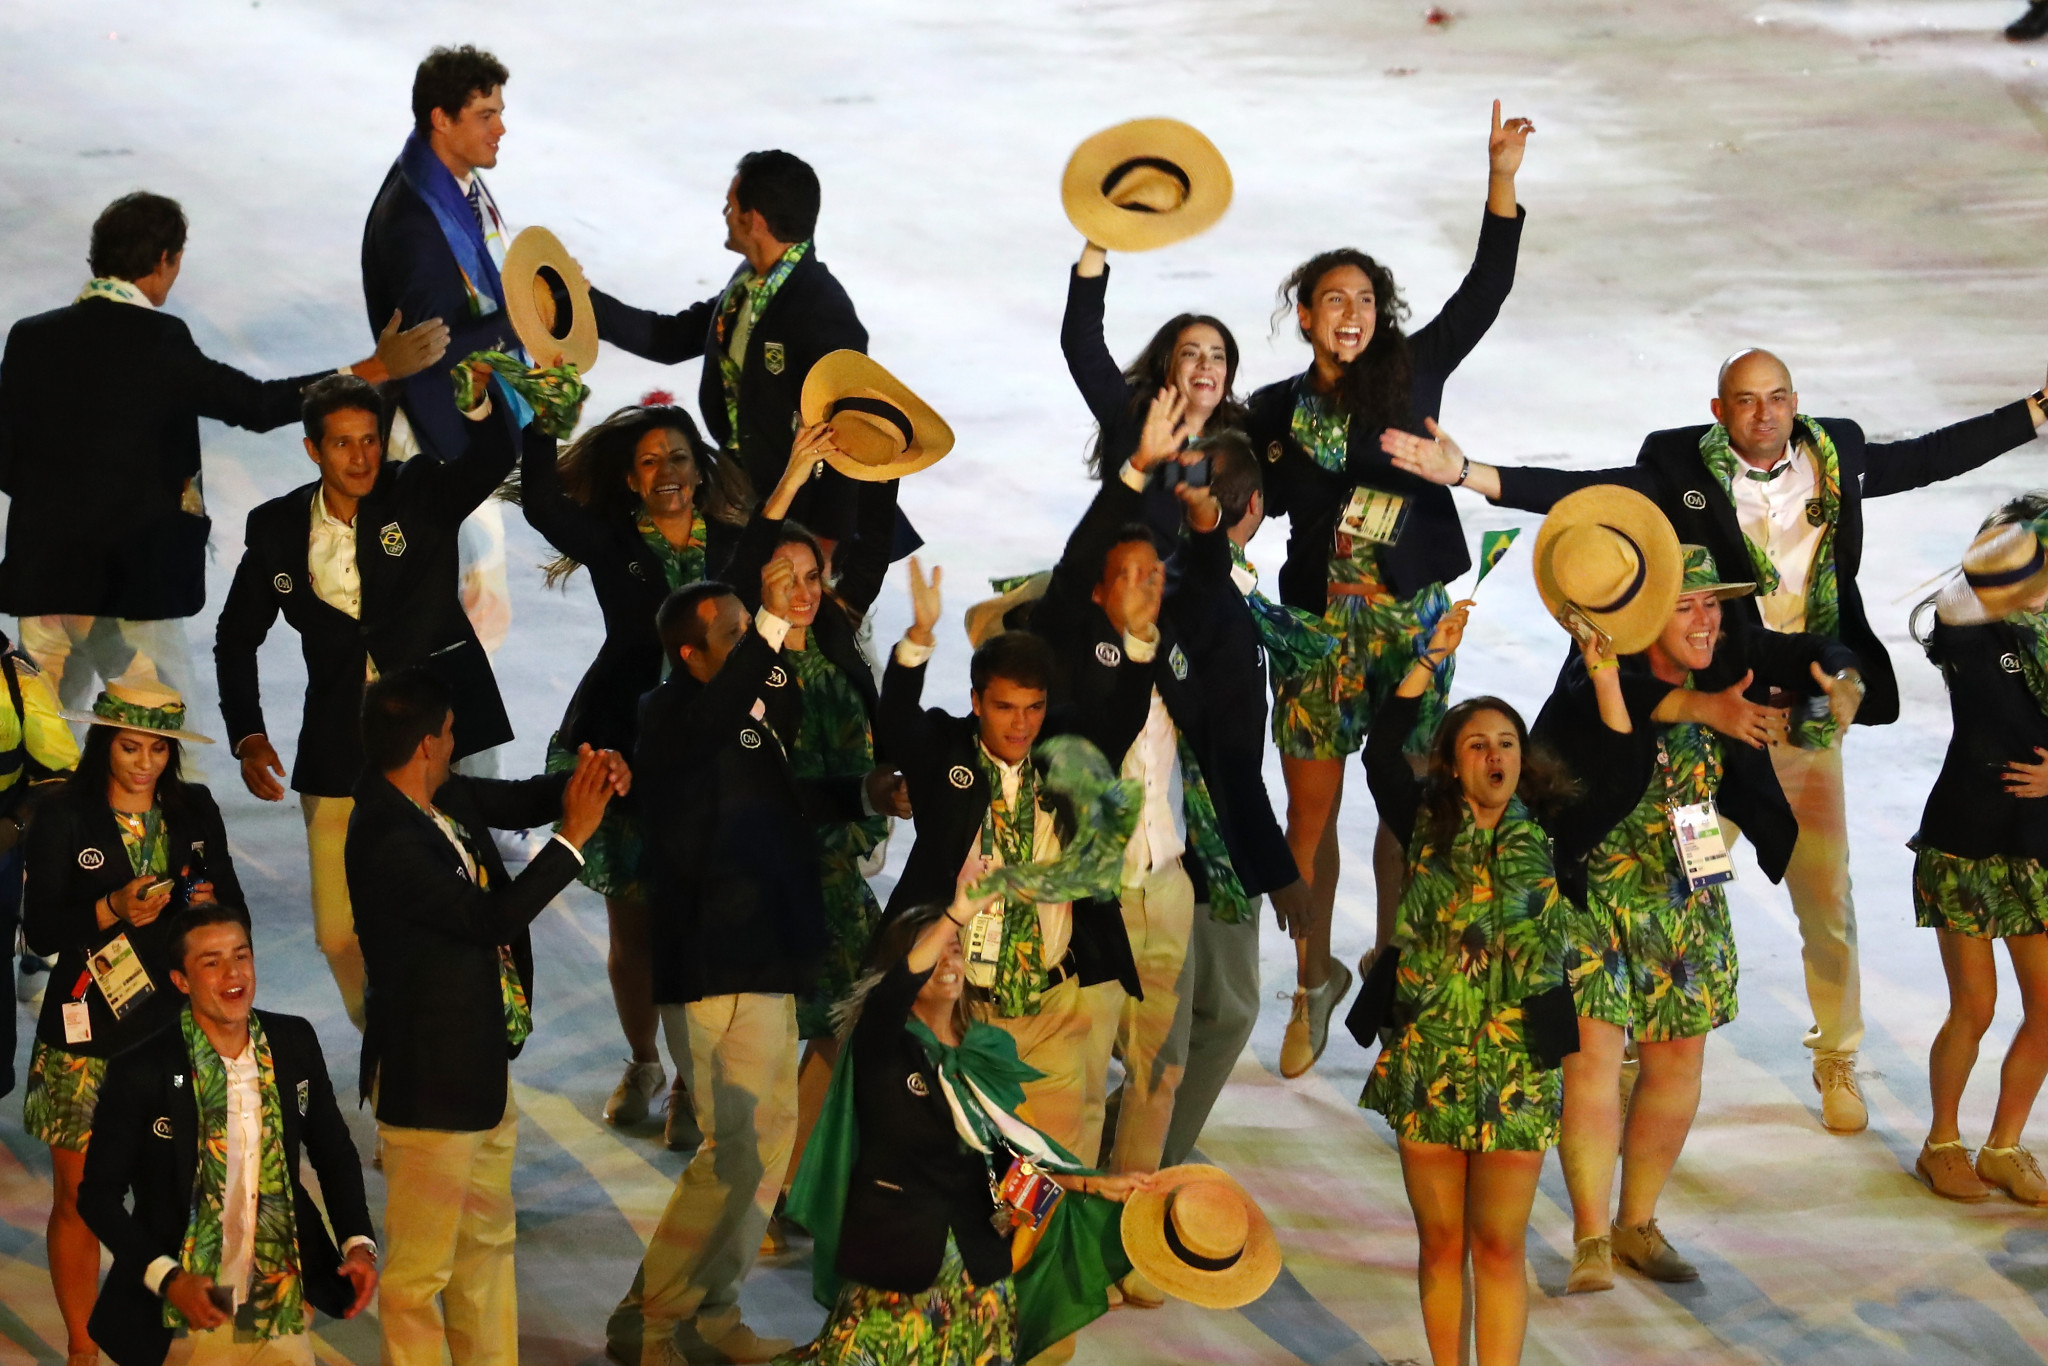 Brazil's team parade during the Opening Ceremony of the Rio 2016 Olympics ©Getty Images